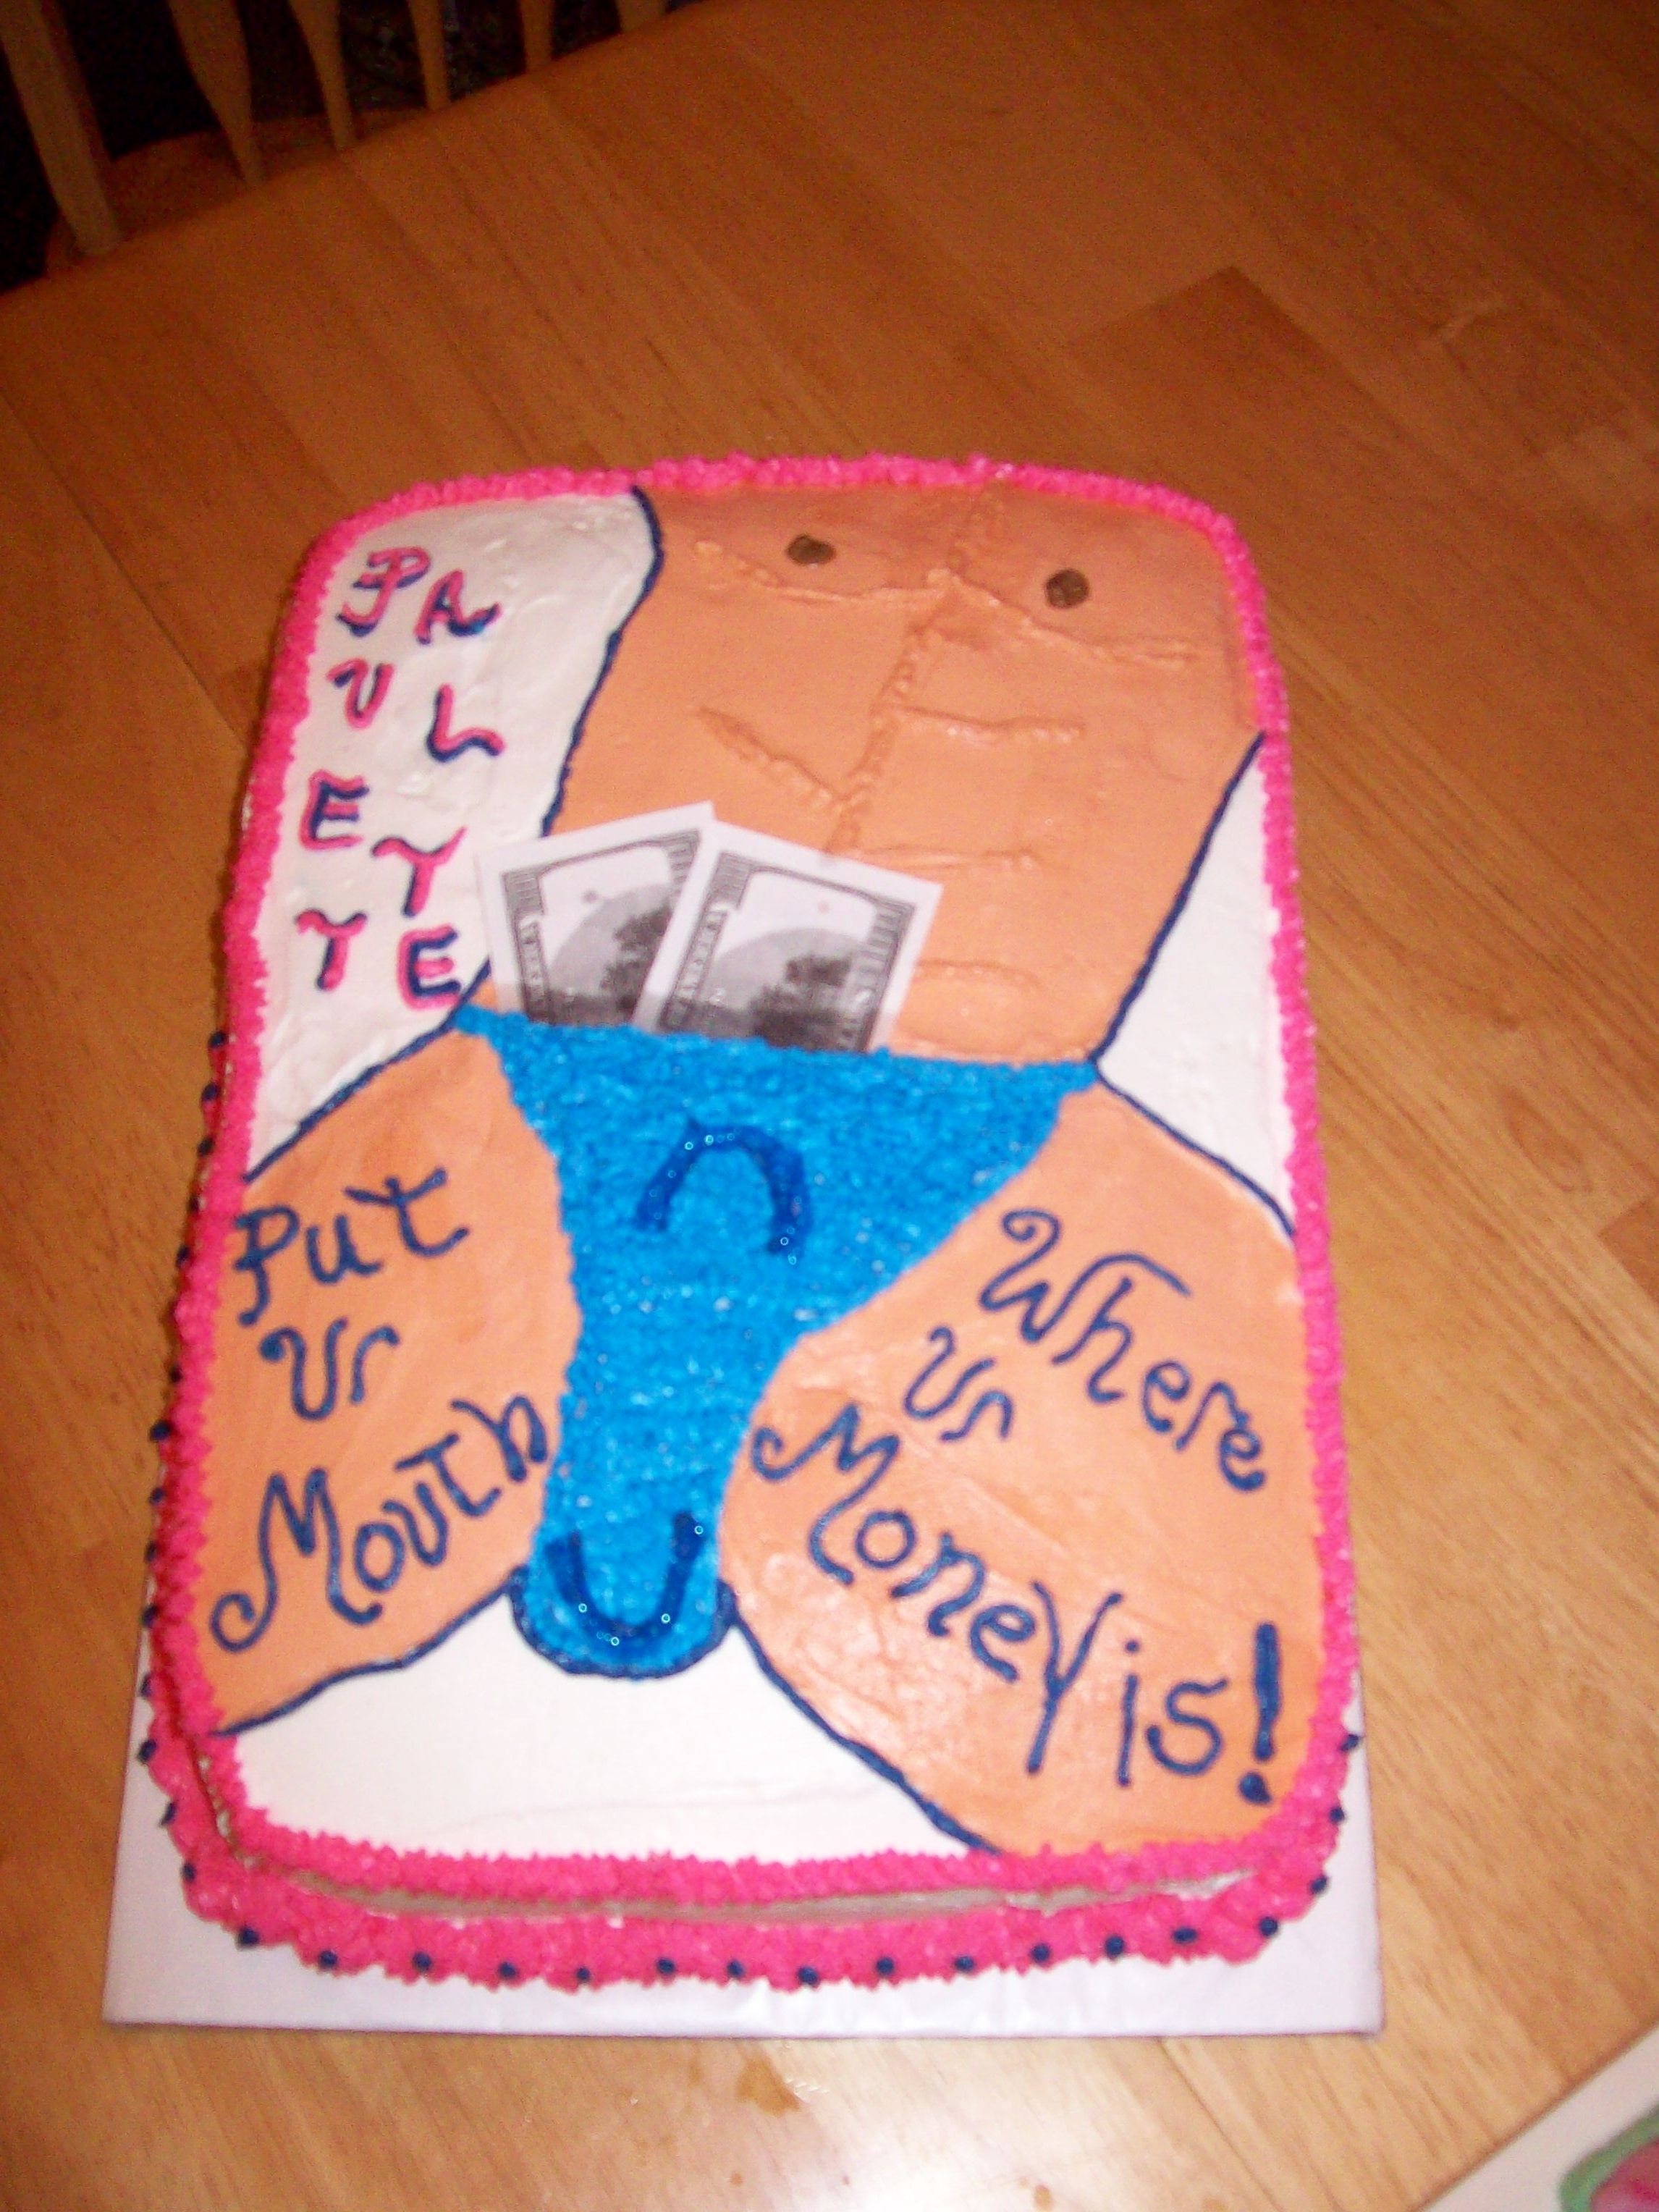 Surprising Stripper Cake Cakecentral Com Funny Birthday Cards Online Alyptdamsfinfo